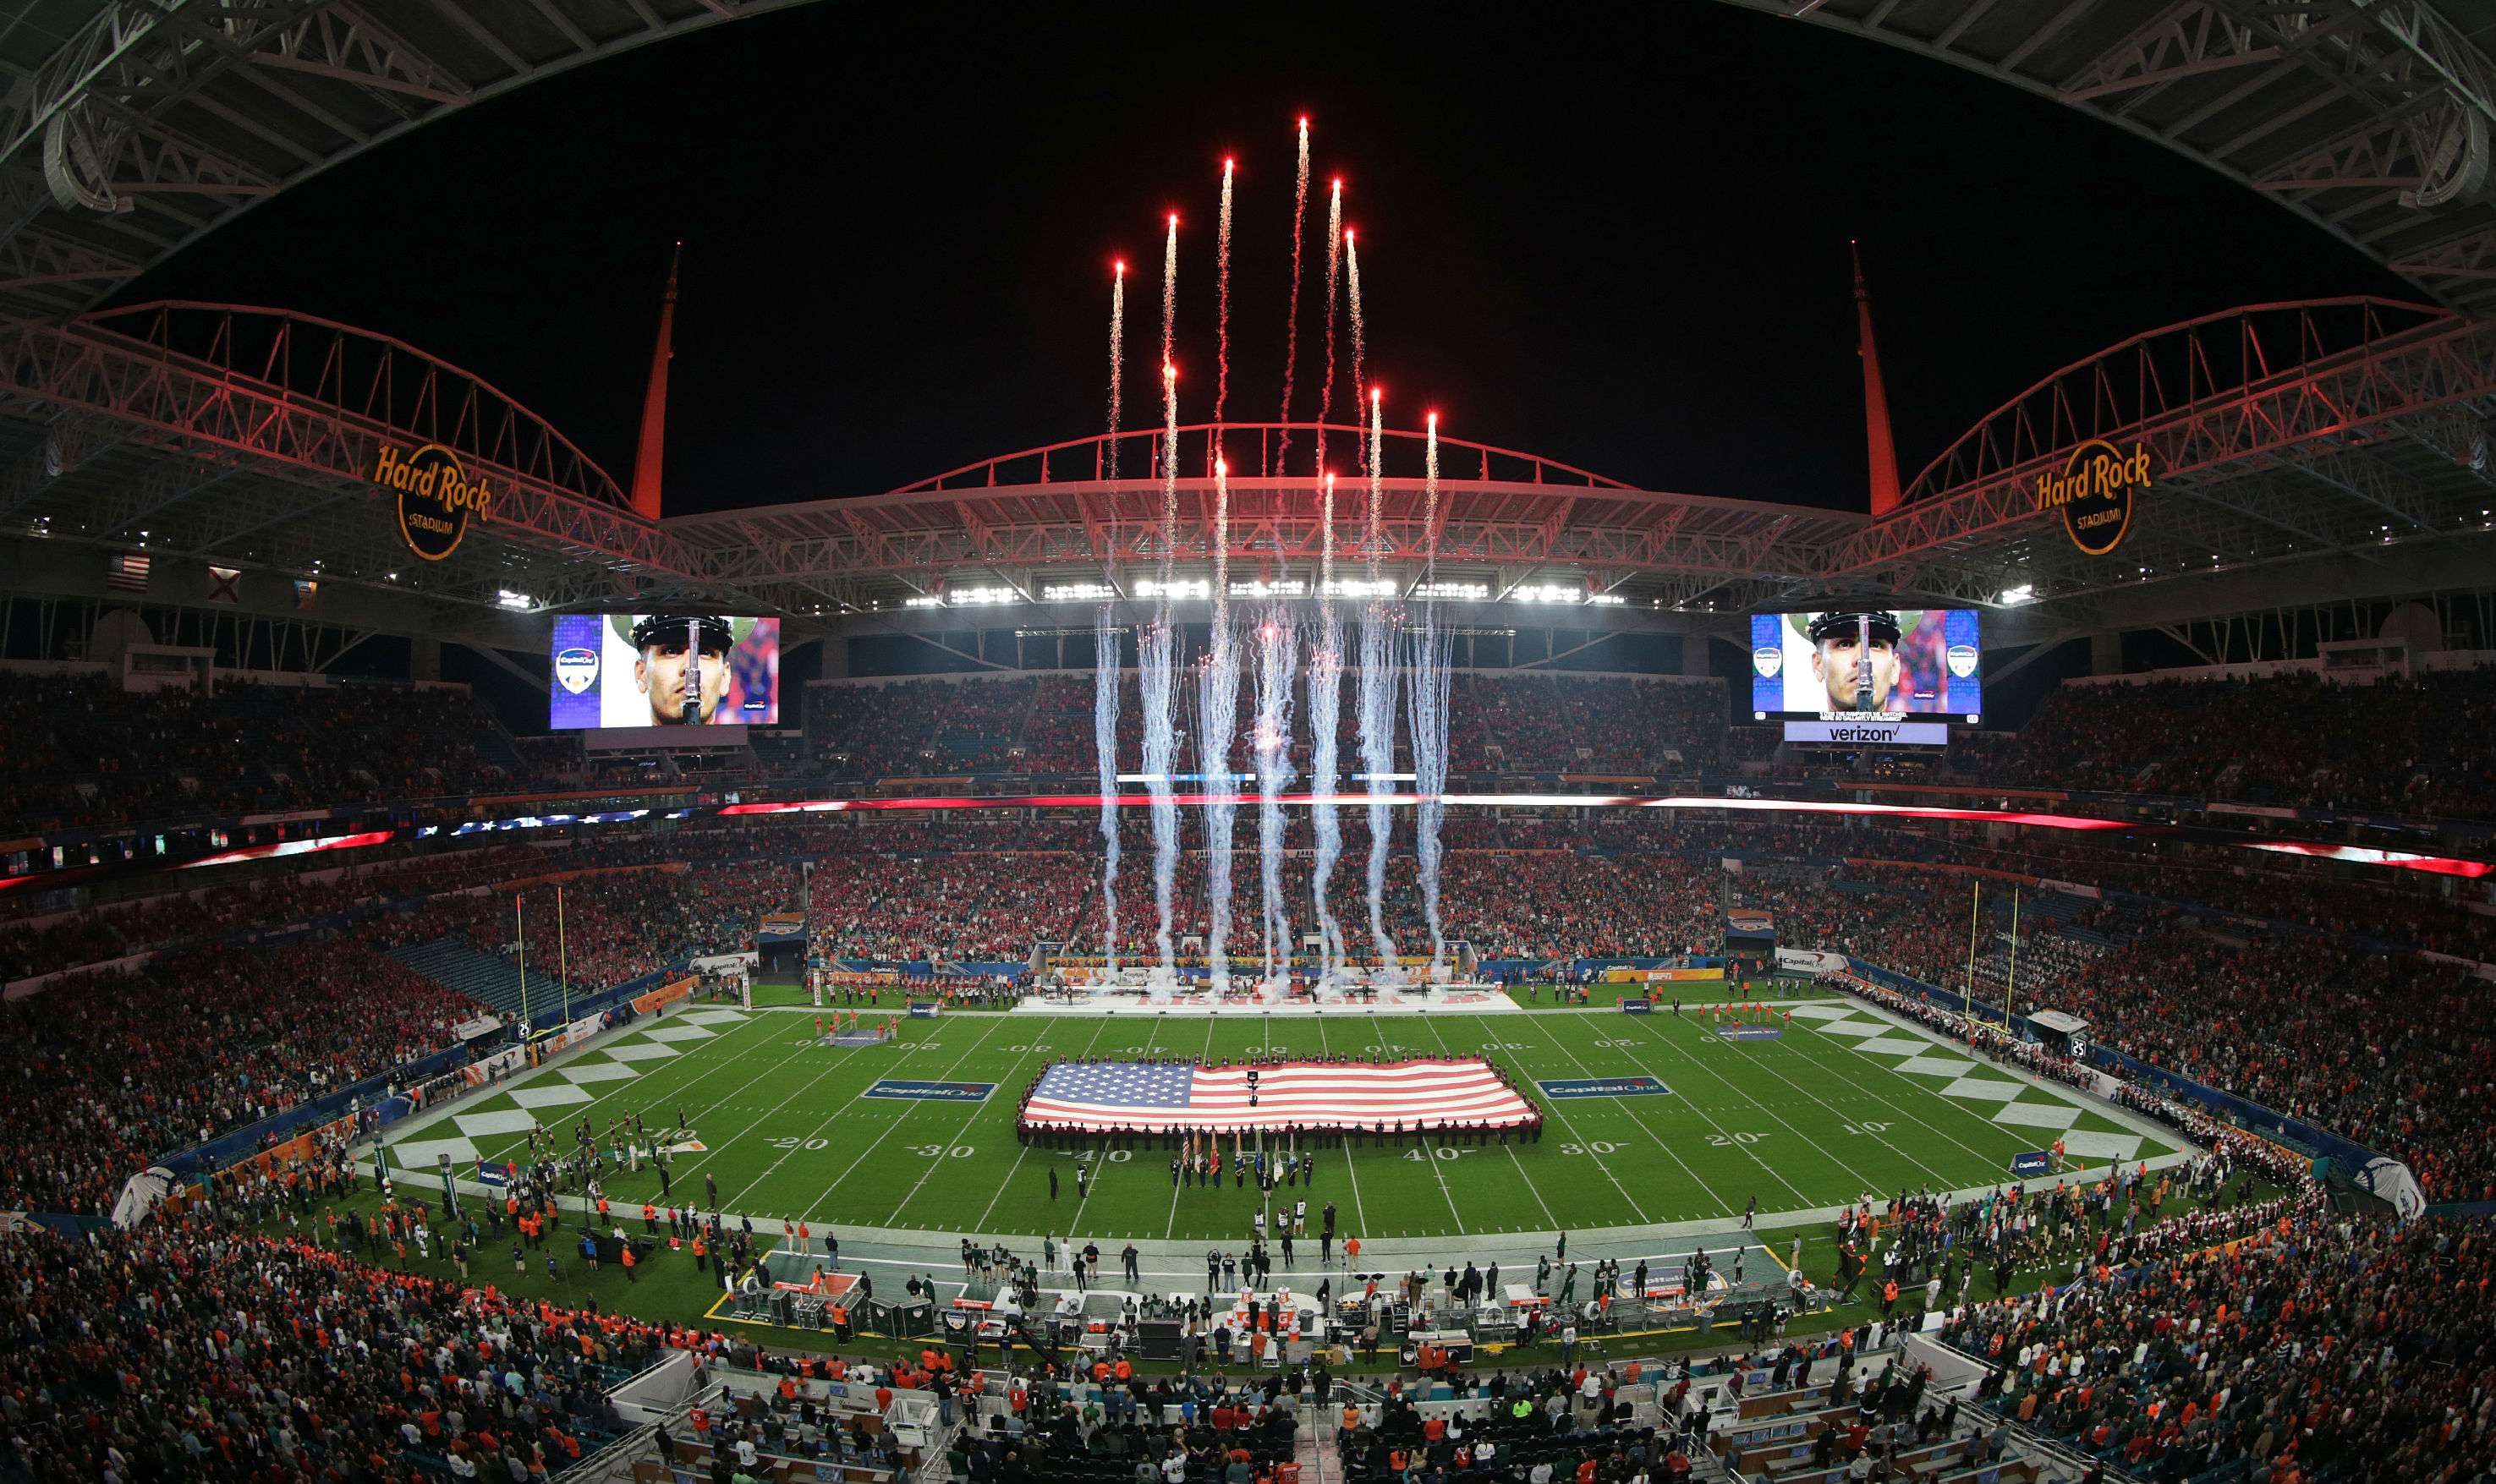 Future Super Bowl locations Host cities stadiums for Super Bowl 2951x1755